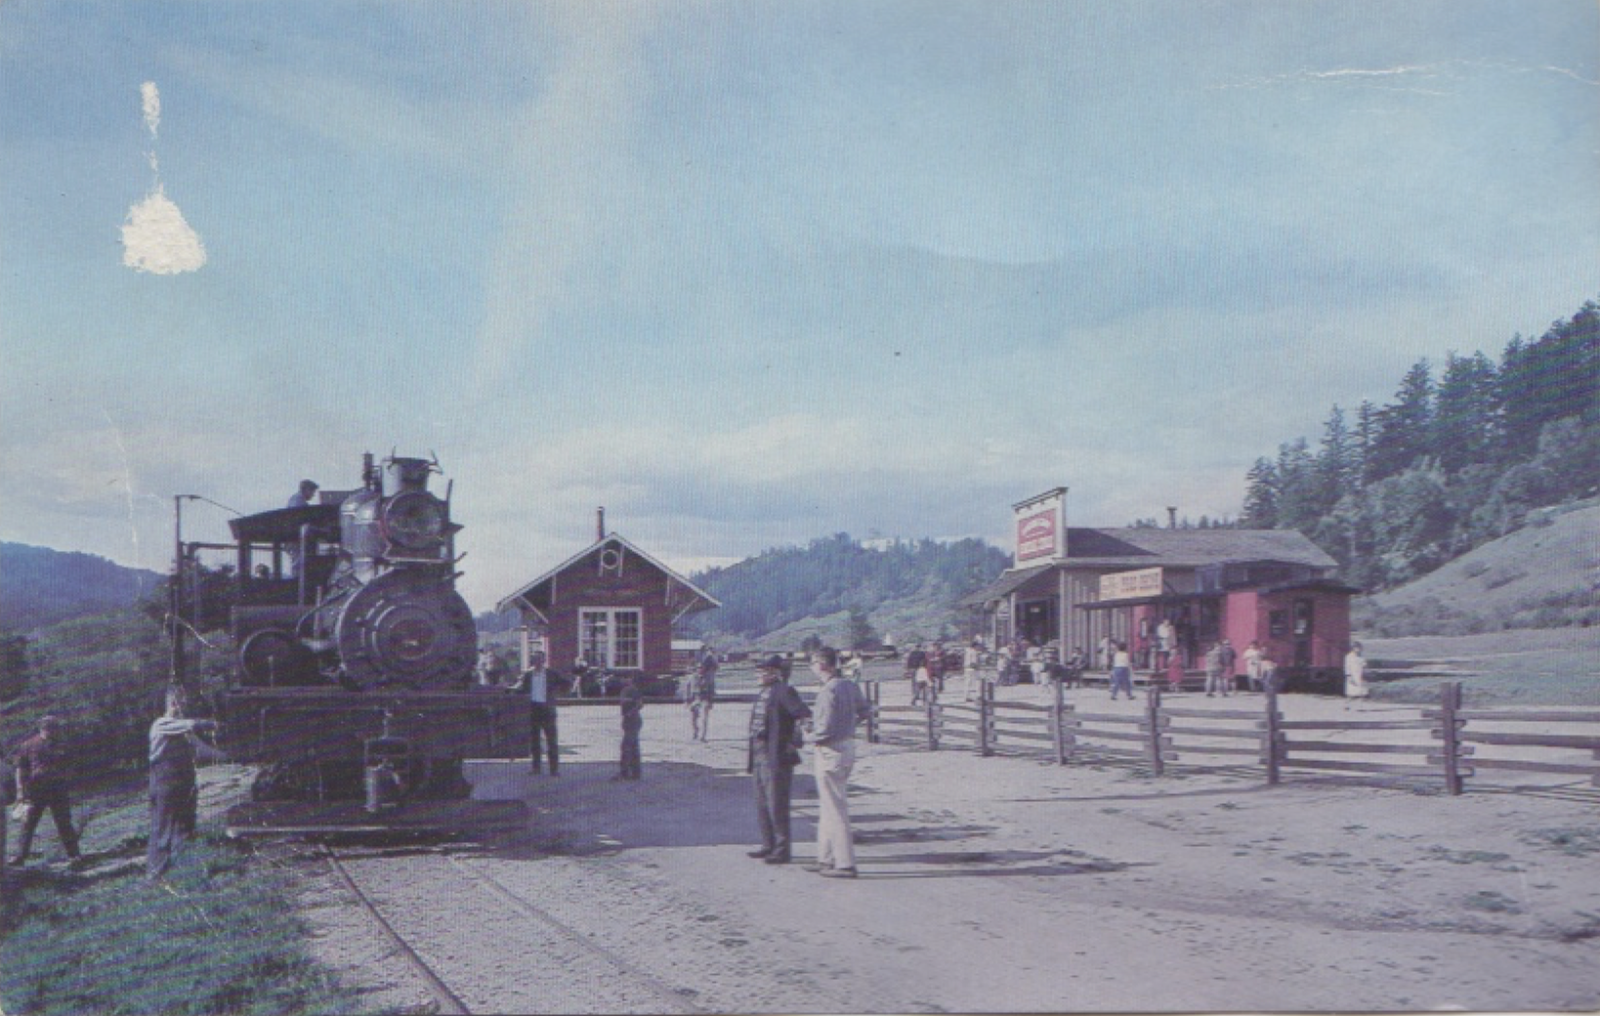 """The park's first locomotive, the """"Dixiana Shay,"""" named after its manufacturer (Shay) and town of origin (Dixiana, Indiana). This photograph was taken in 1966, only three years after the attraction opened (Santa Cruz Trains)."""